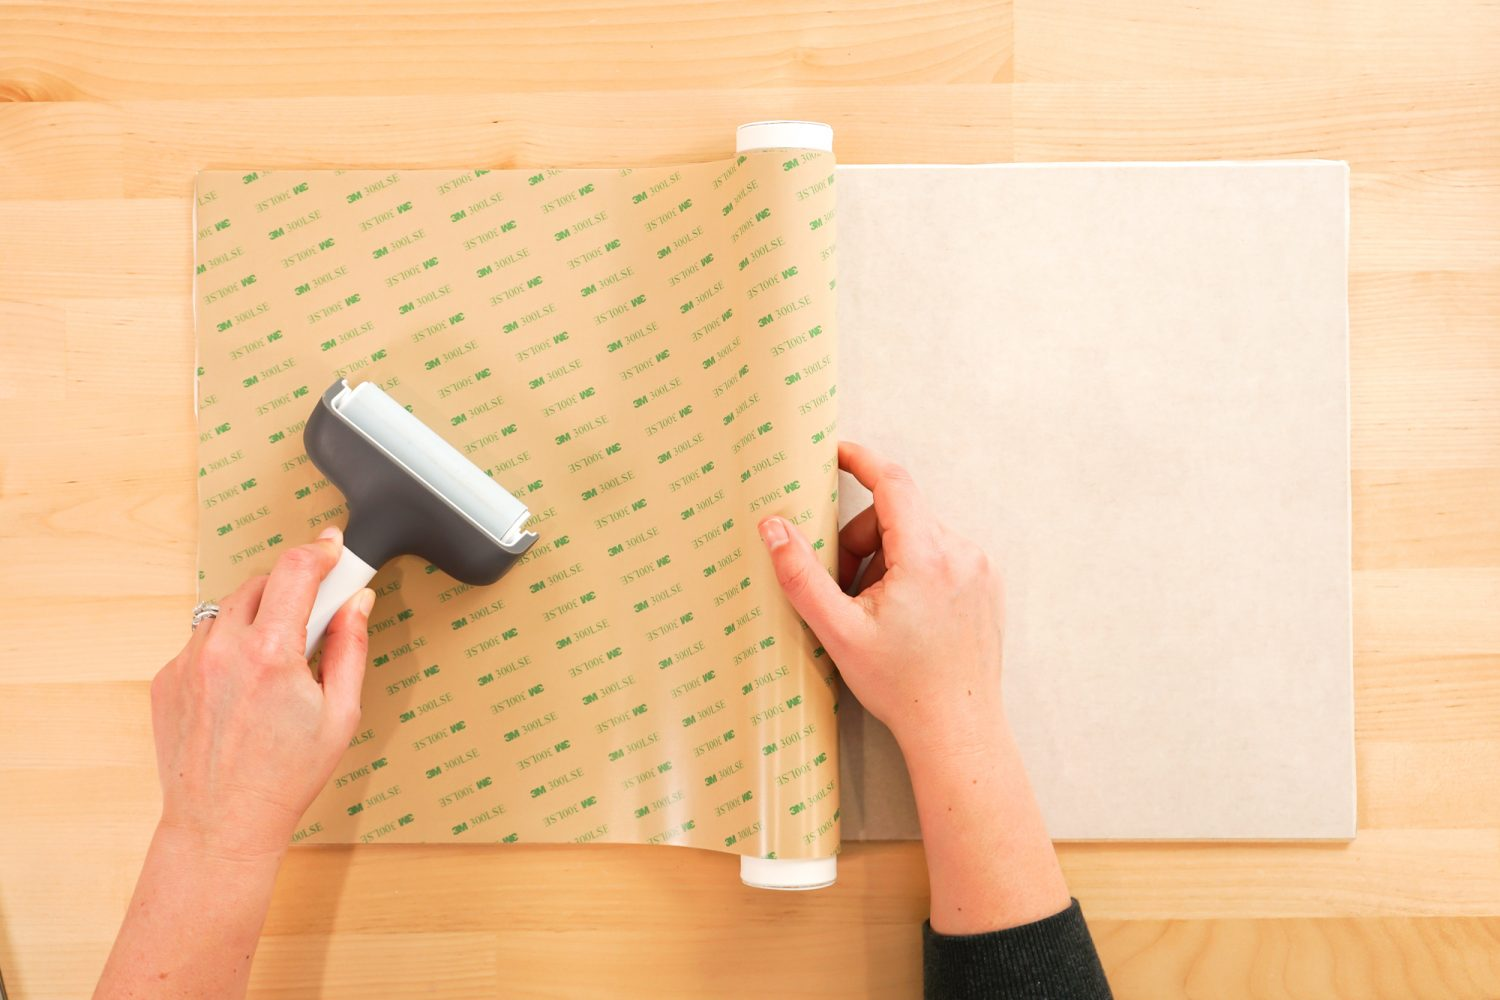 Hands using a brayer to apply the 3M adhesive